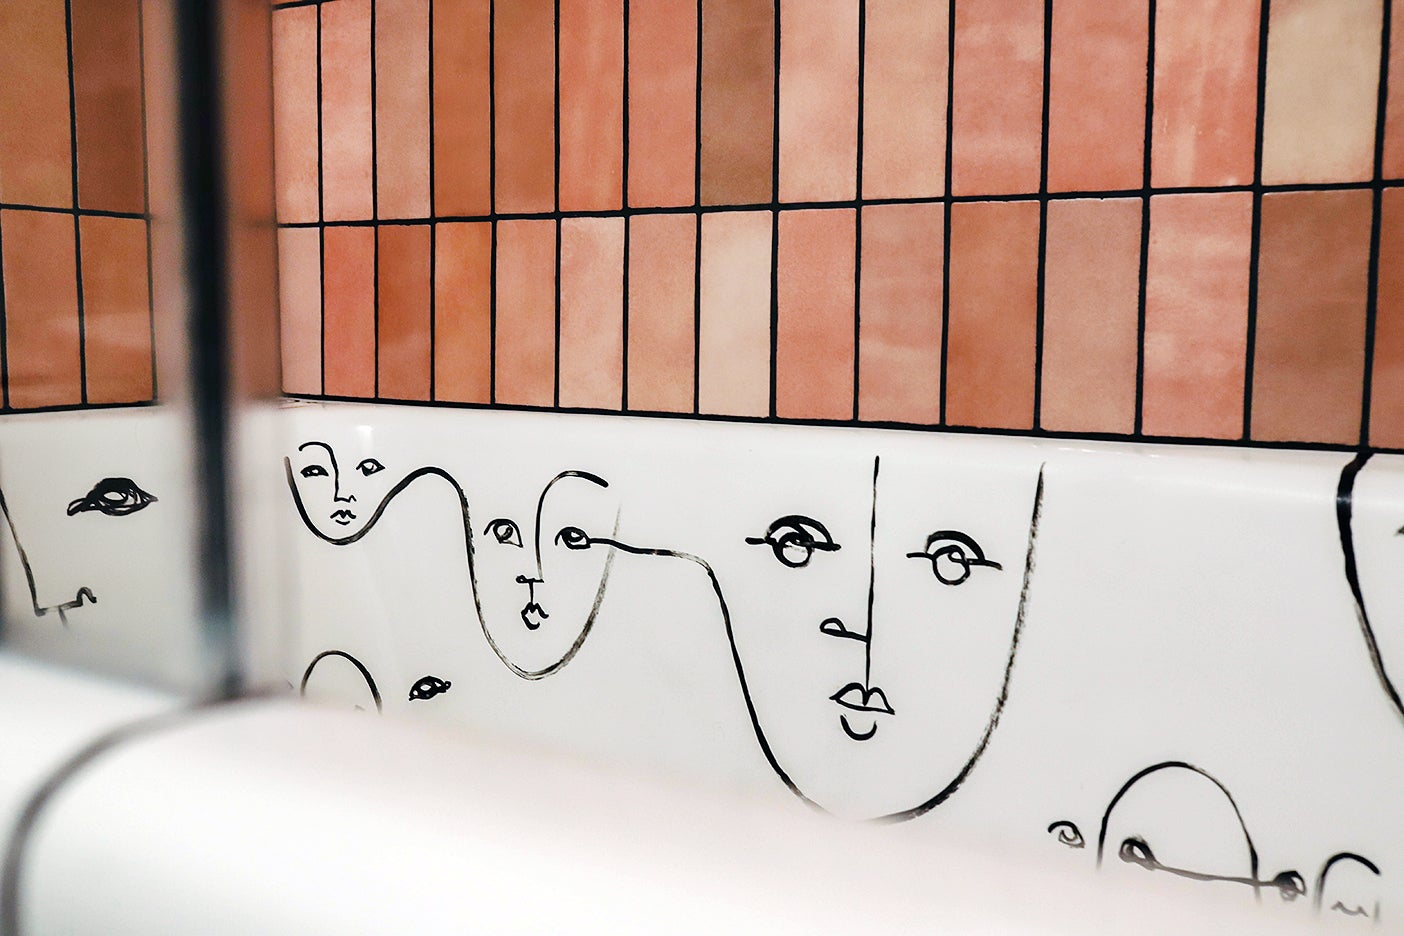 abstract faces drawn inside tub